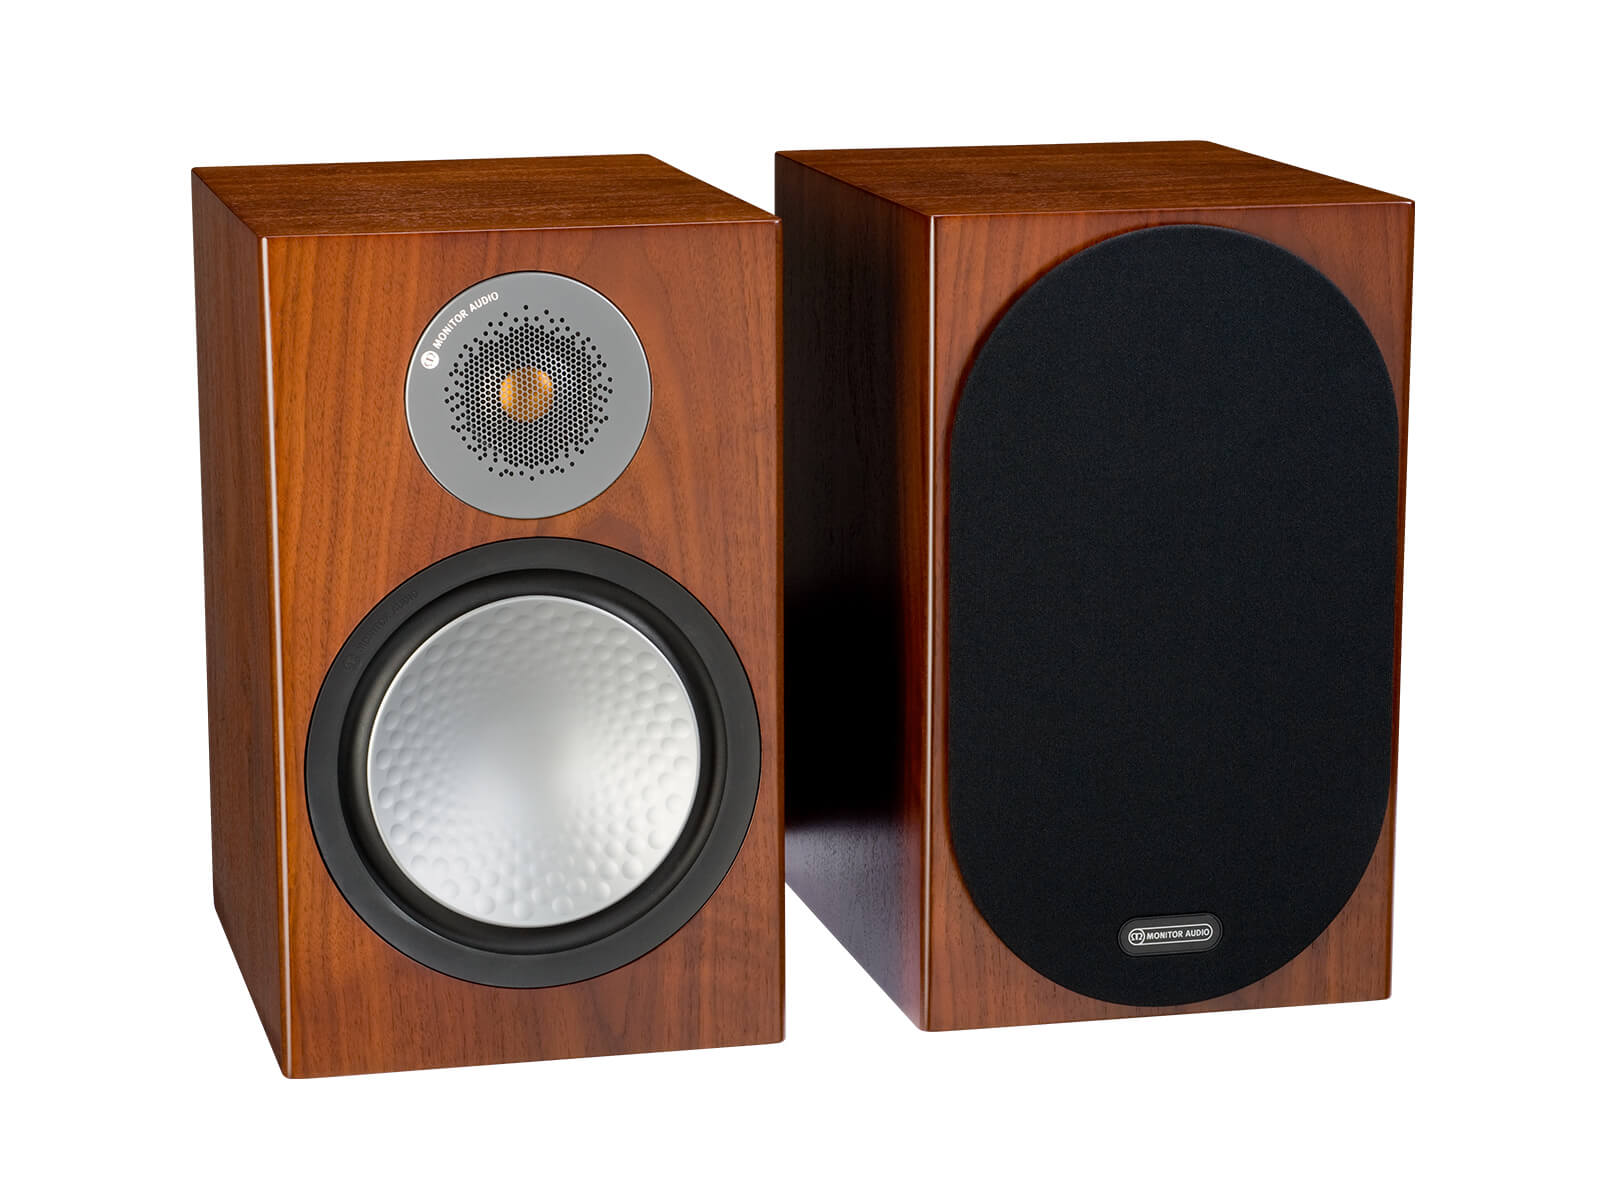 Silver 100, bookshelf speakers, with and without grille in a walnut finish.